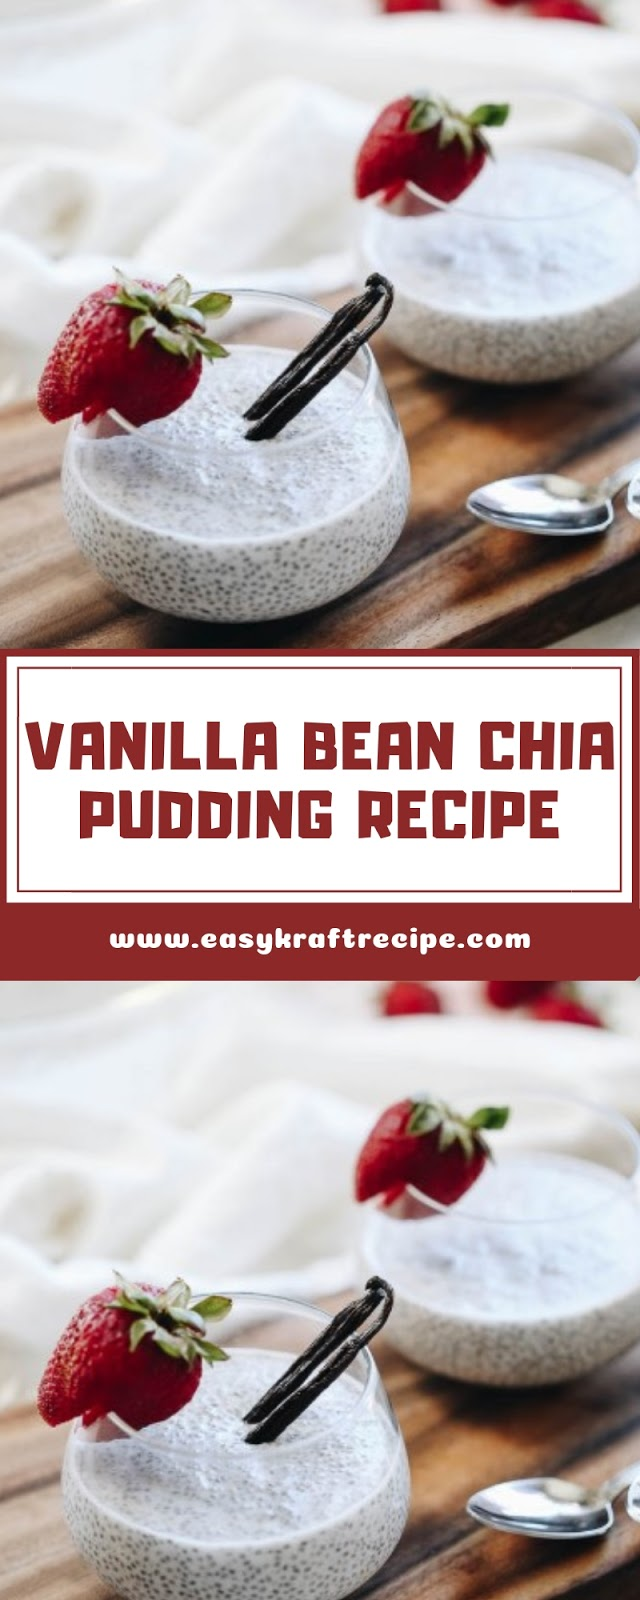 VANILLA BEAN CHIA PUDDING RECIPE